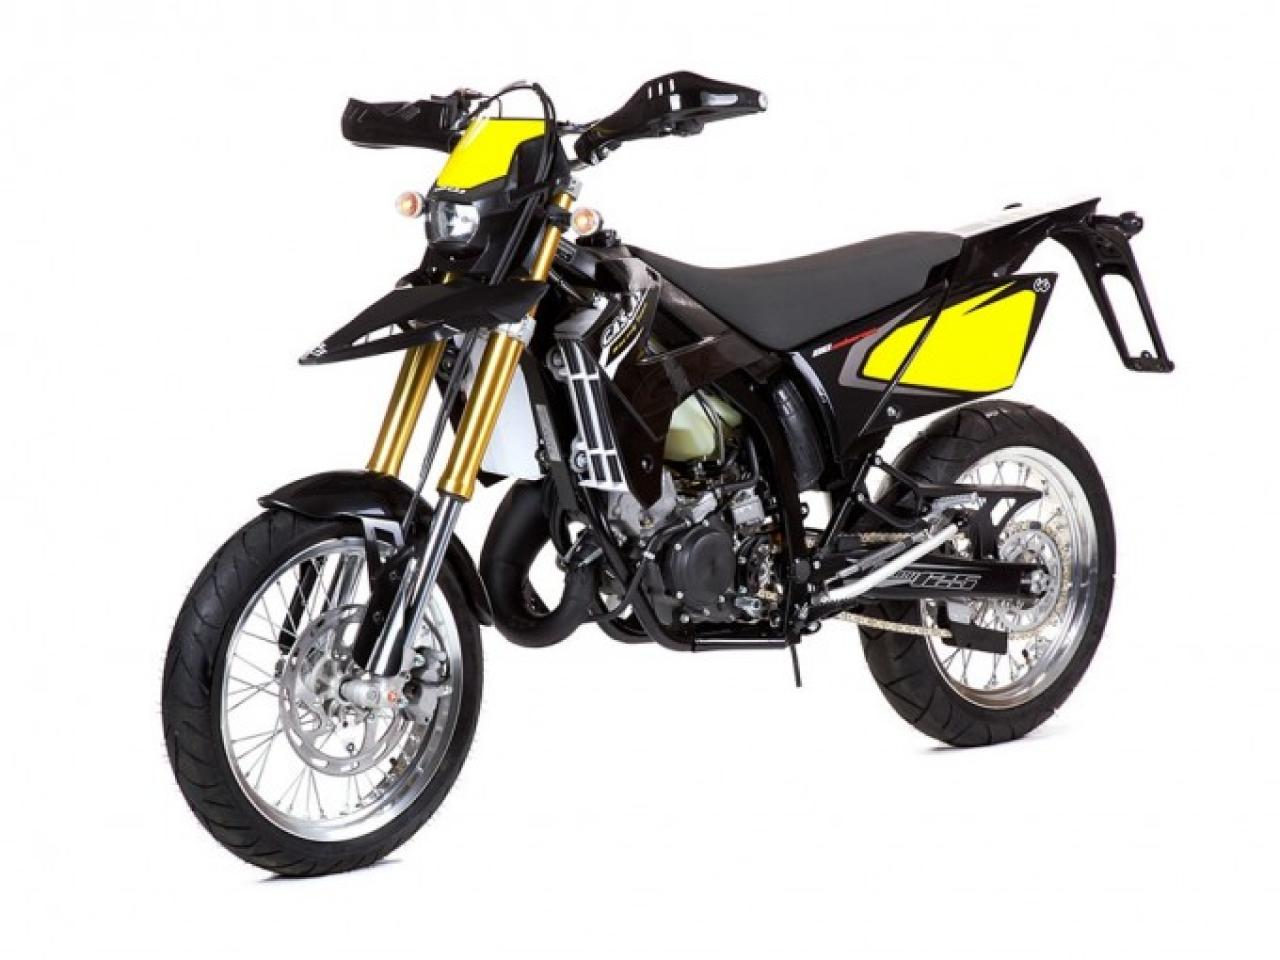 2010 gas gas halley 125 2t moto zombdrive com. Black Bedroom Furniture Sets. Home Design Ideas